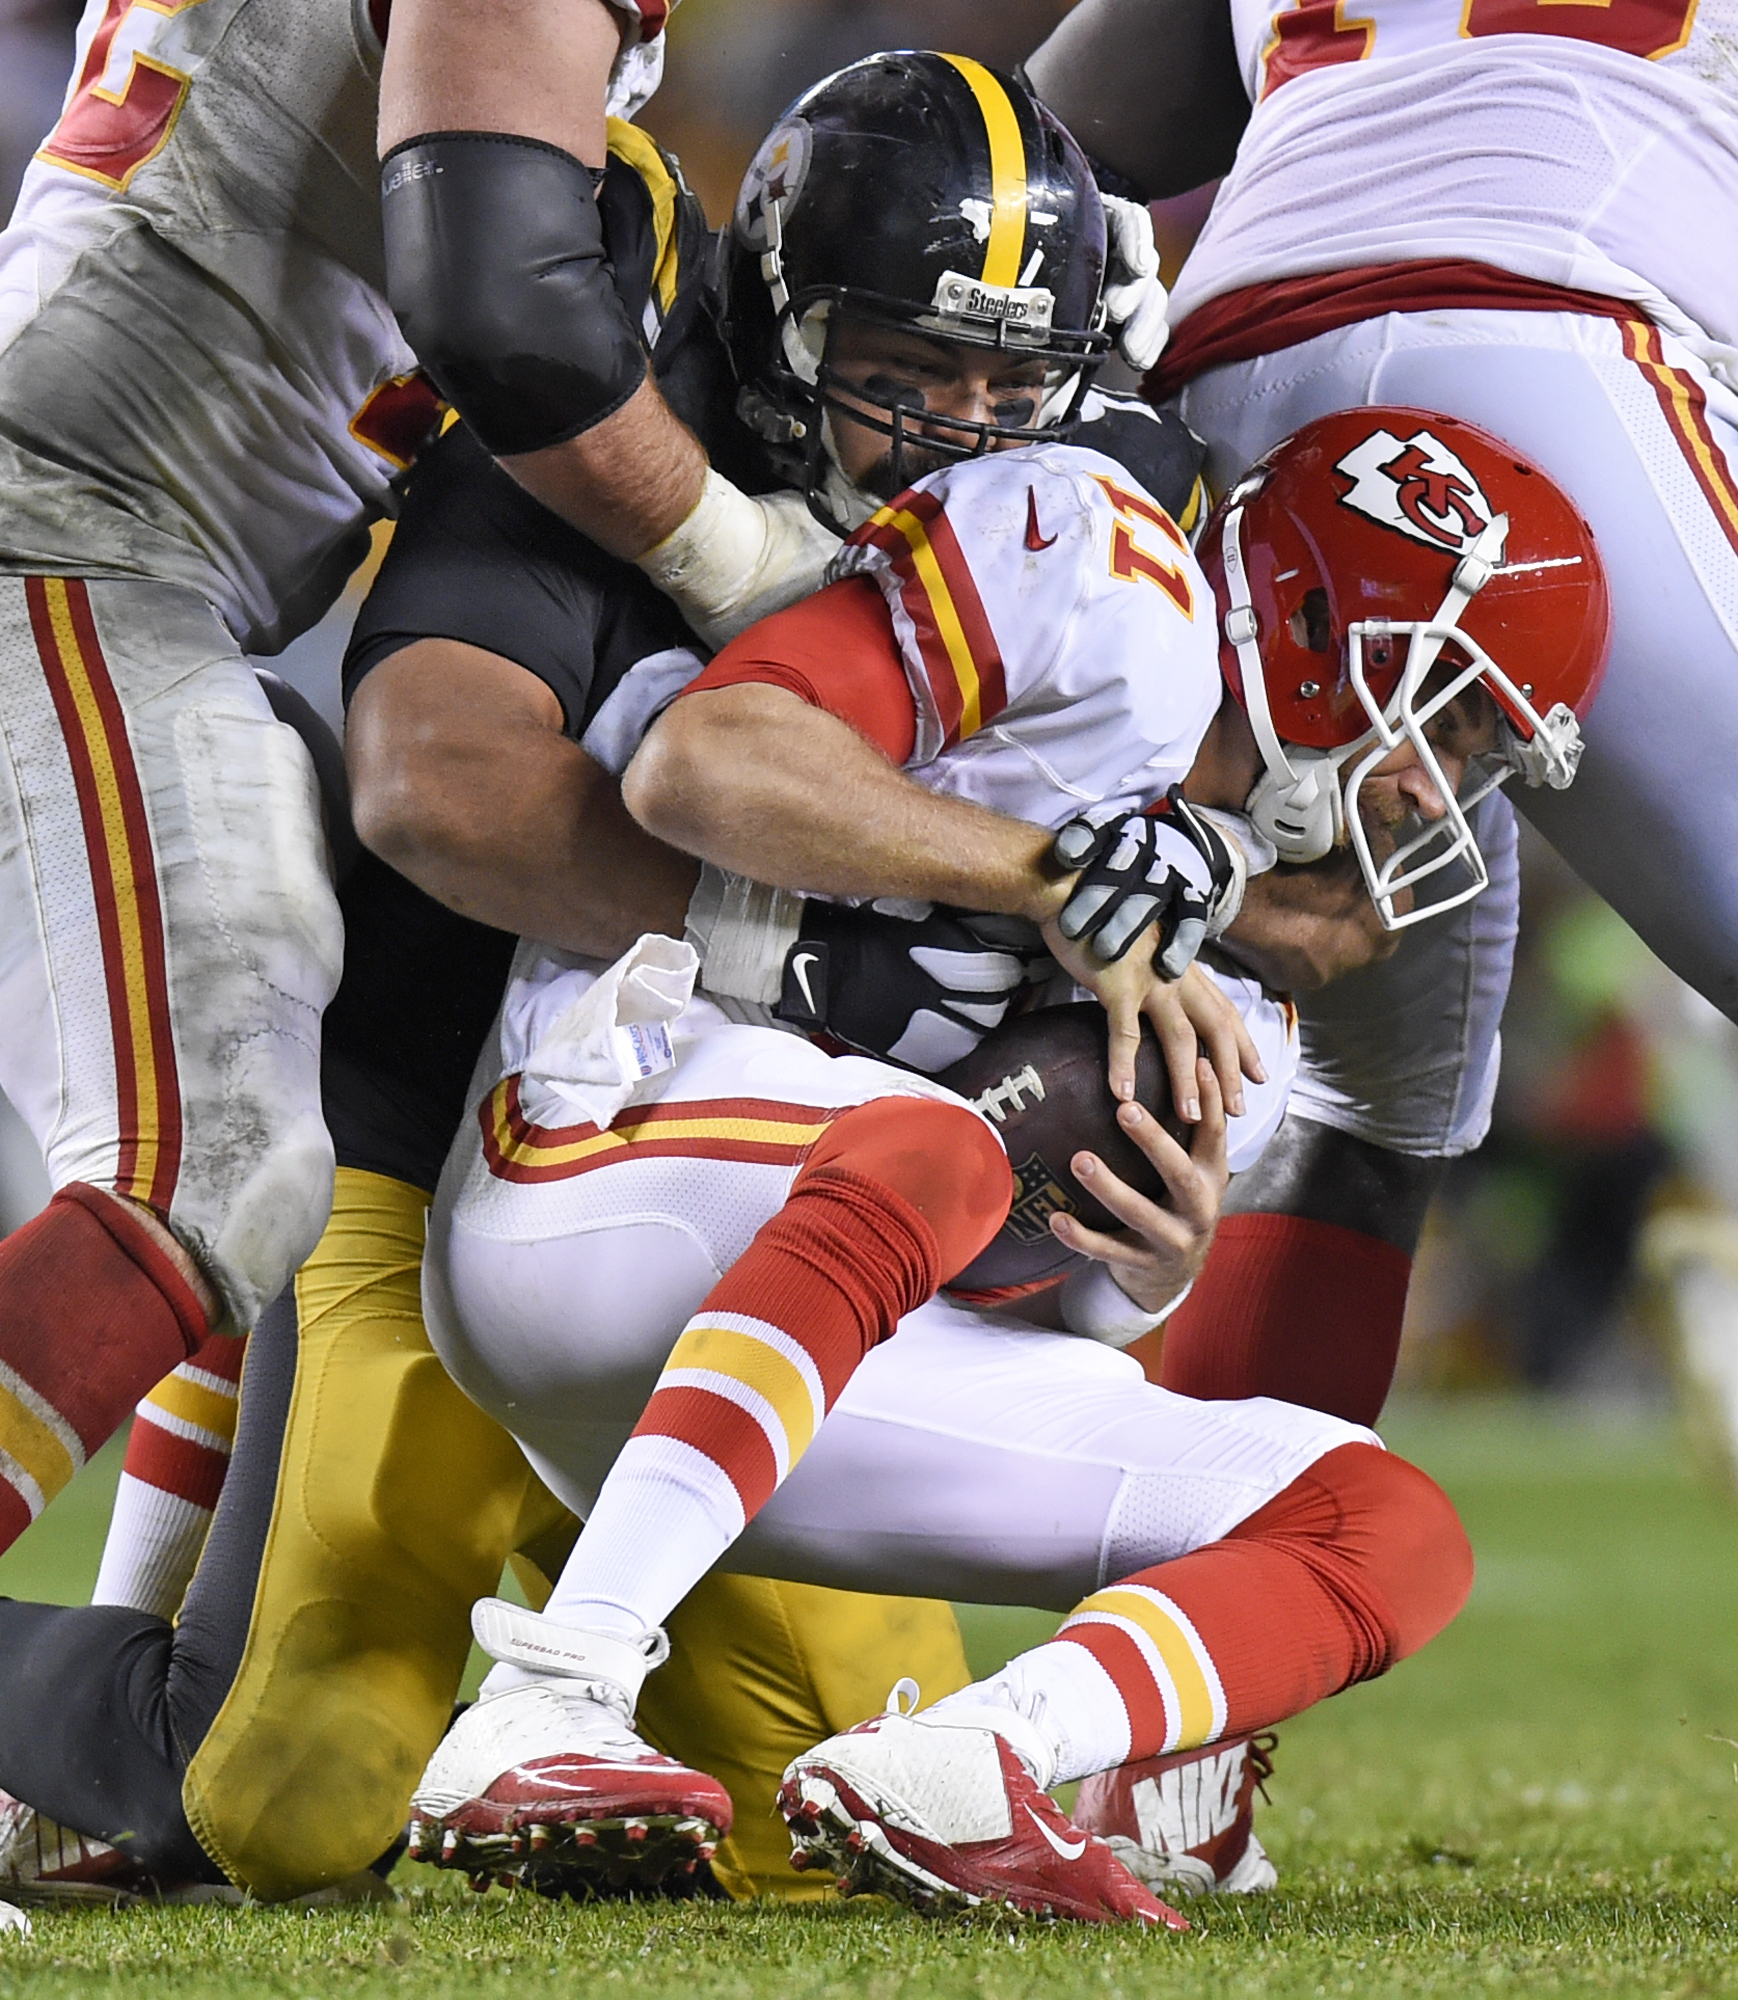 Pittsburgh Steelers defensive end Cameron Heyward (97) sacks Kansas City Chiefs quarterback Alex Smith (11) during the second half of an NFL football game in Pittsburgh, Sunday, Oct. 2, 2016. The Steelers won 43-14. (AP Photo/Don Wright)